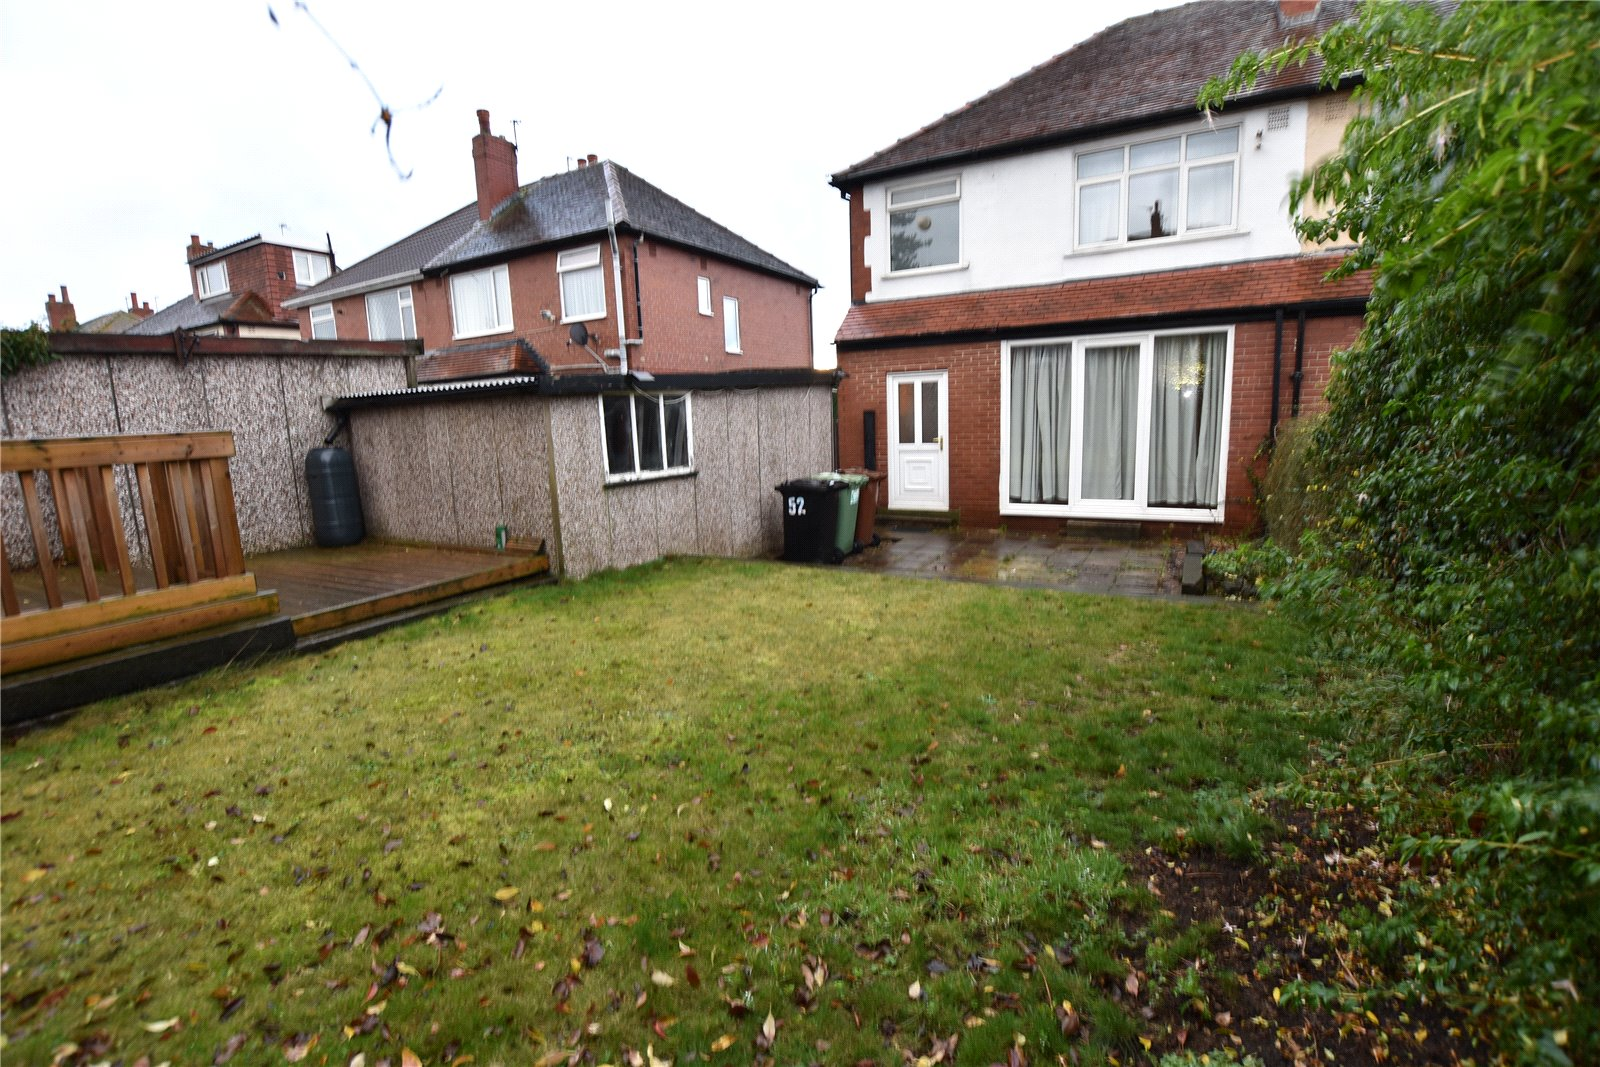 Property for sale in Crossgates, exterior rear of property